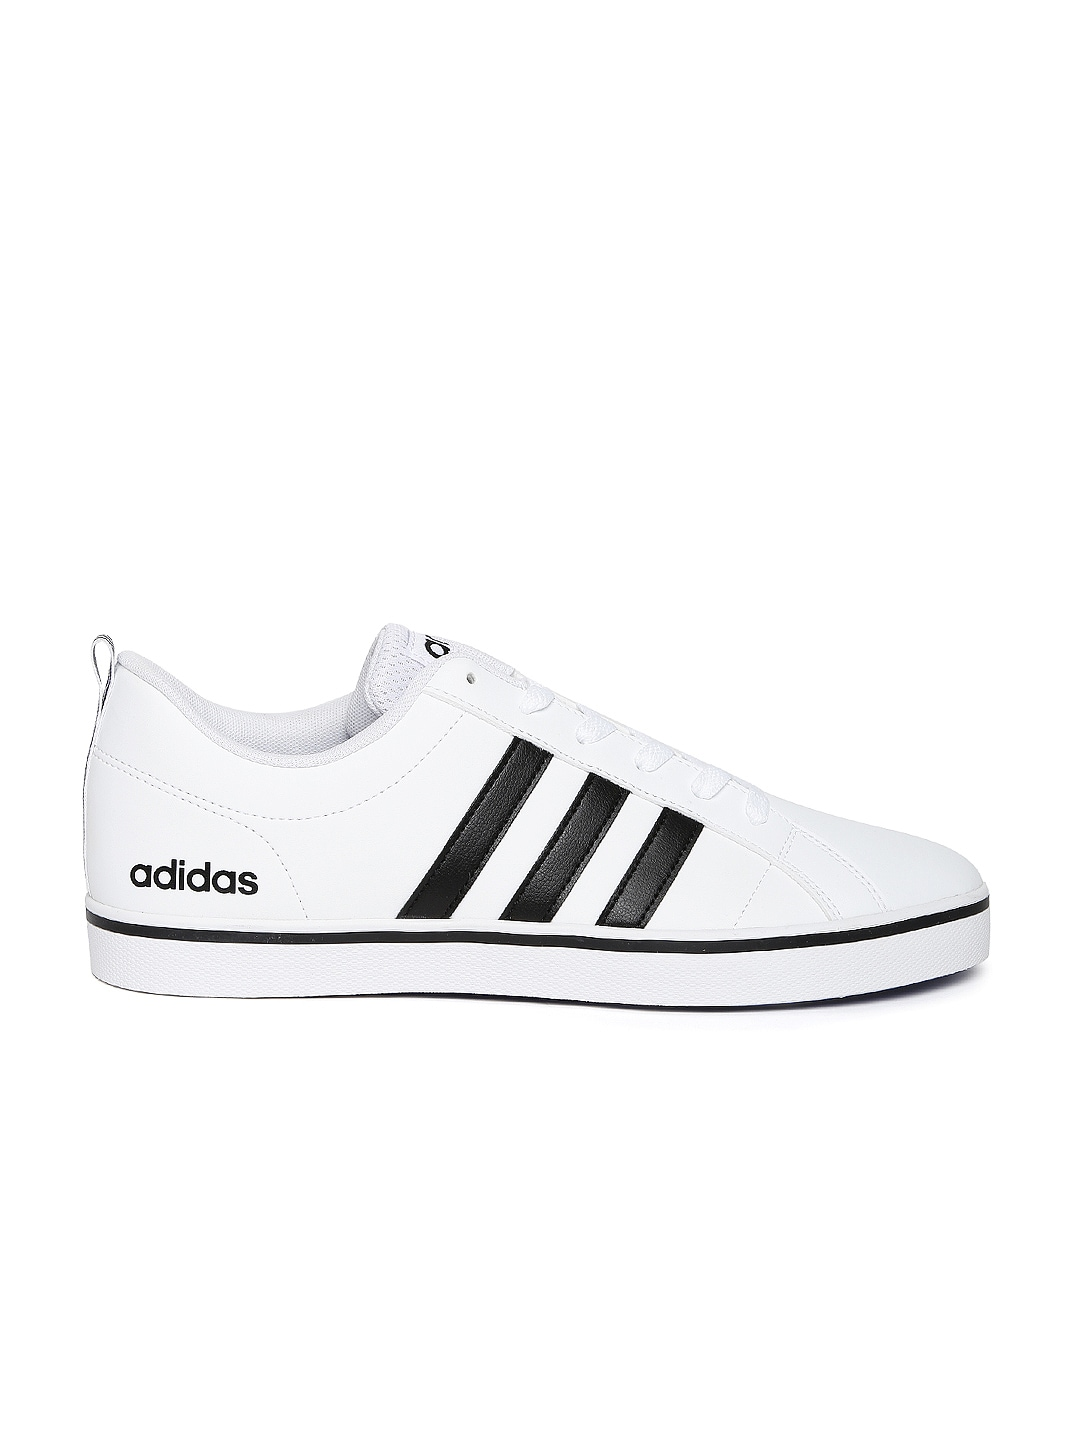 82a24e91f46 Men Shoes Adidas uk Casual For Lfc co Wallbank Neo wE4Or4qx